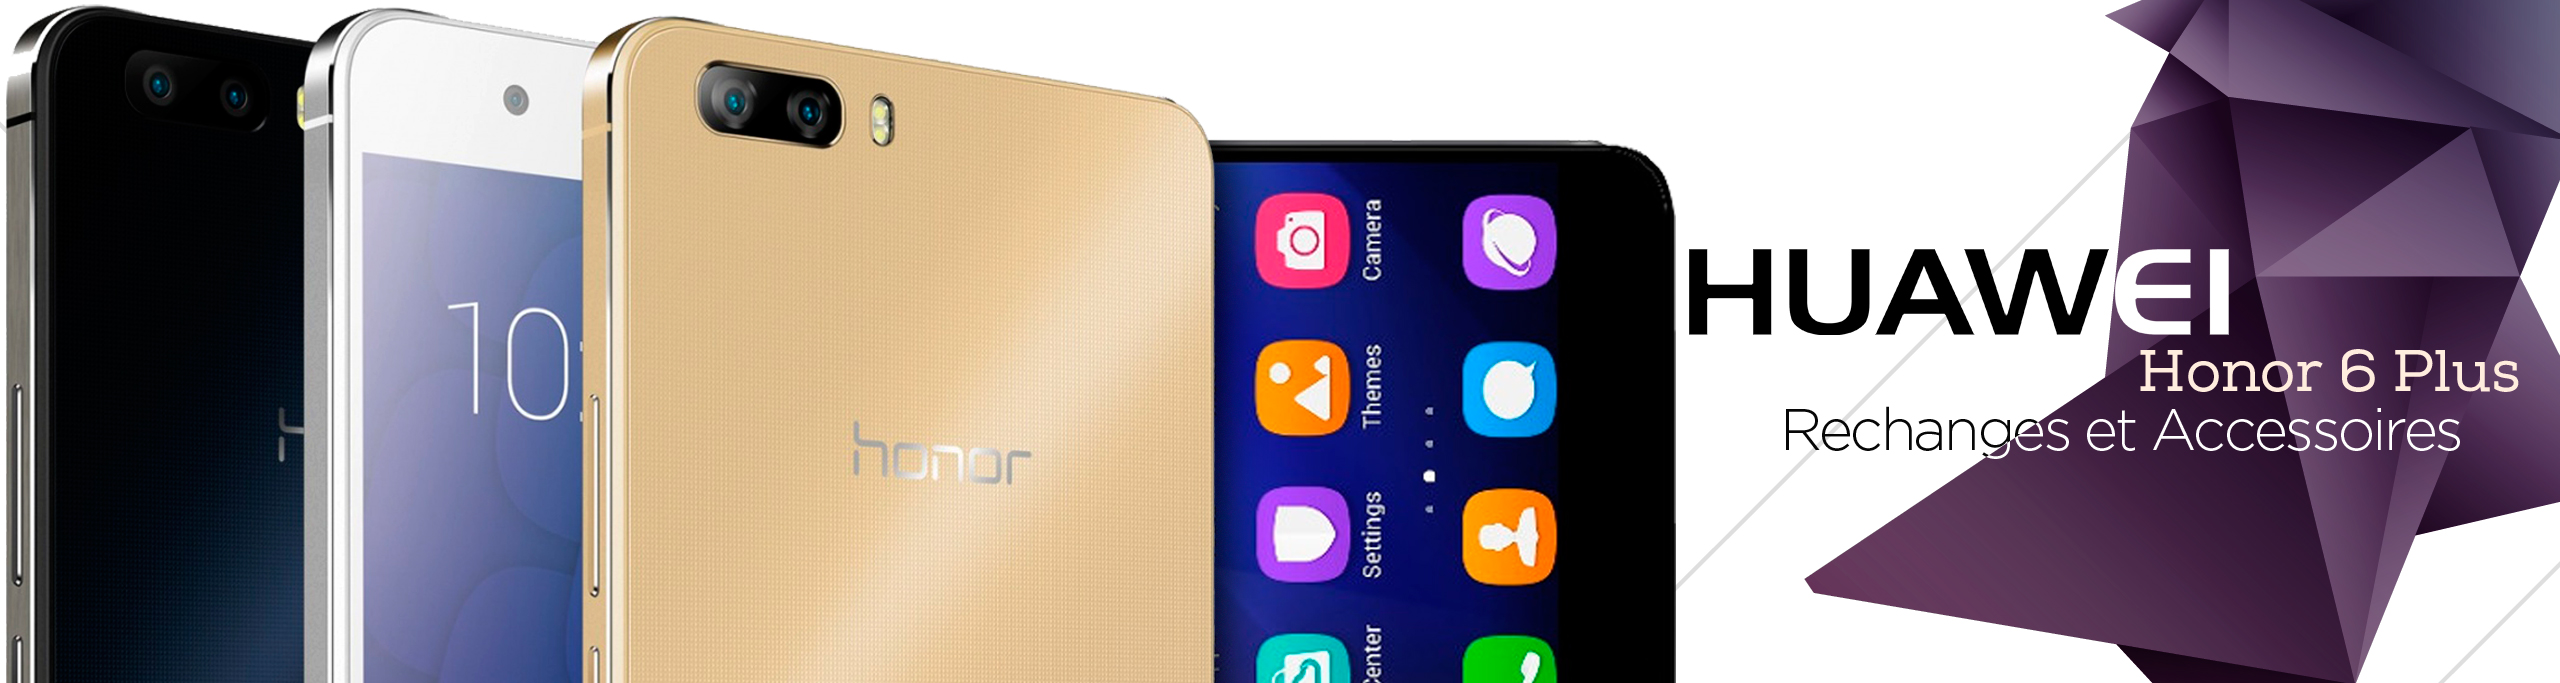 Honor 6 Plus